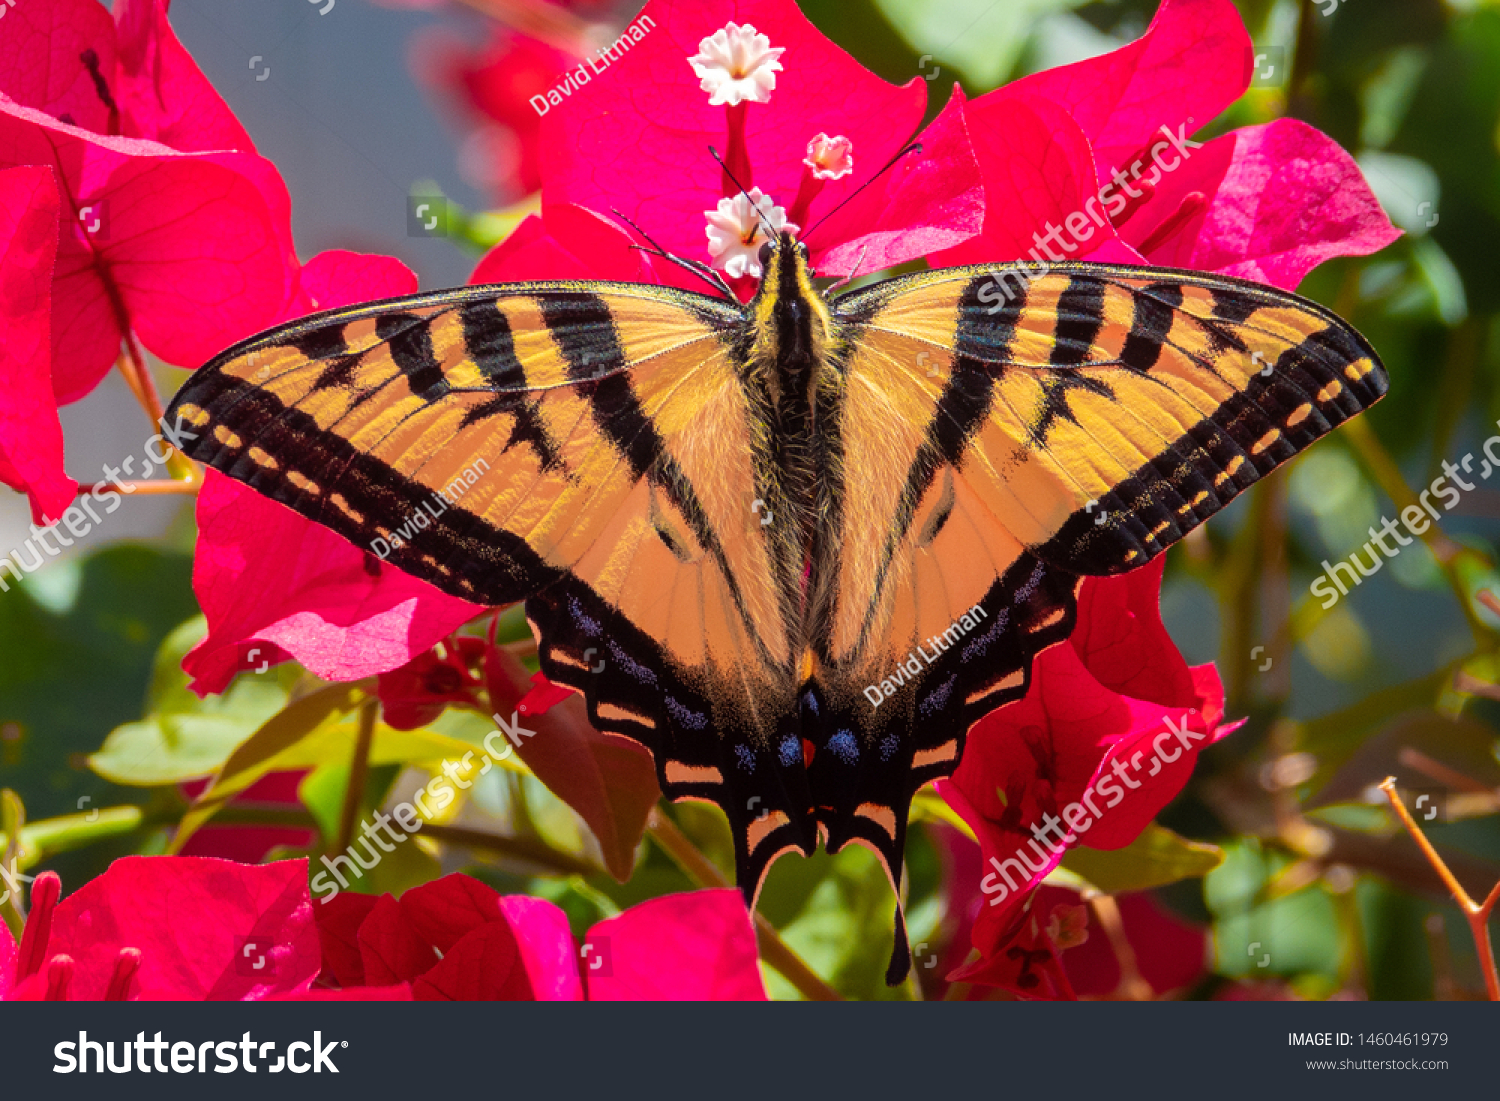 A Western Tiger Swallowtail butterfly (Papilio rutulus) feeds on the nectar of Bougainvillea flowers in Monterey, in central California.